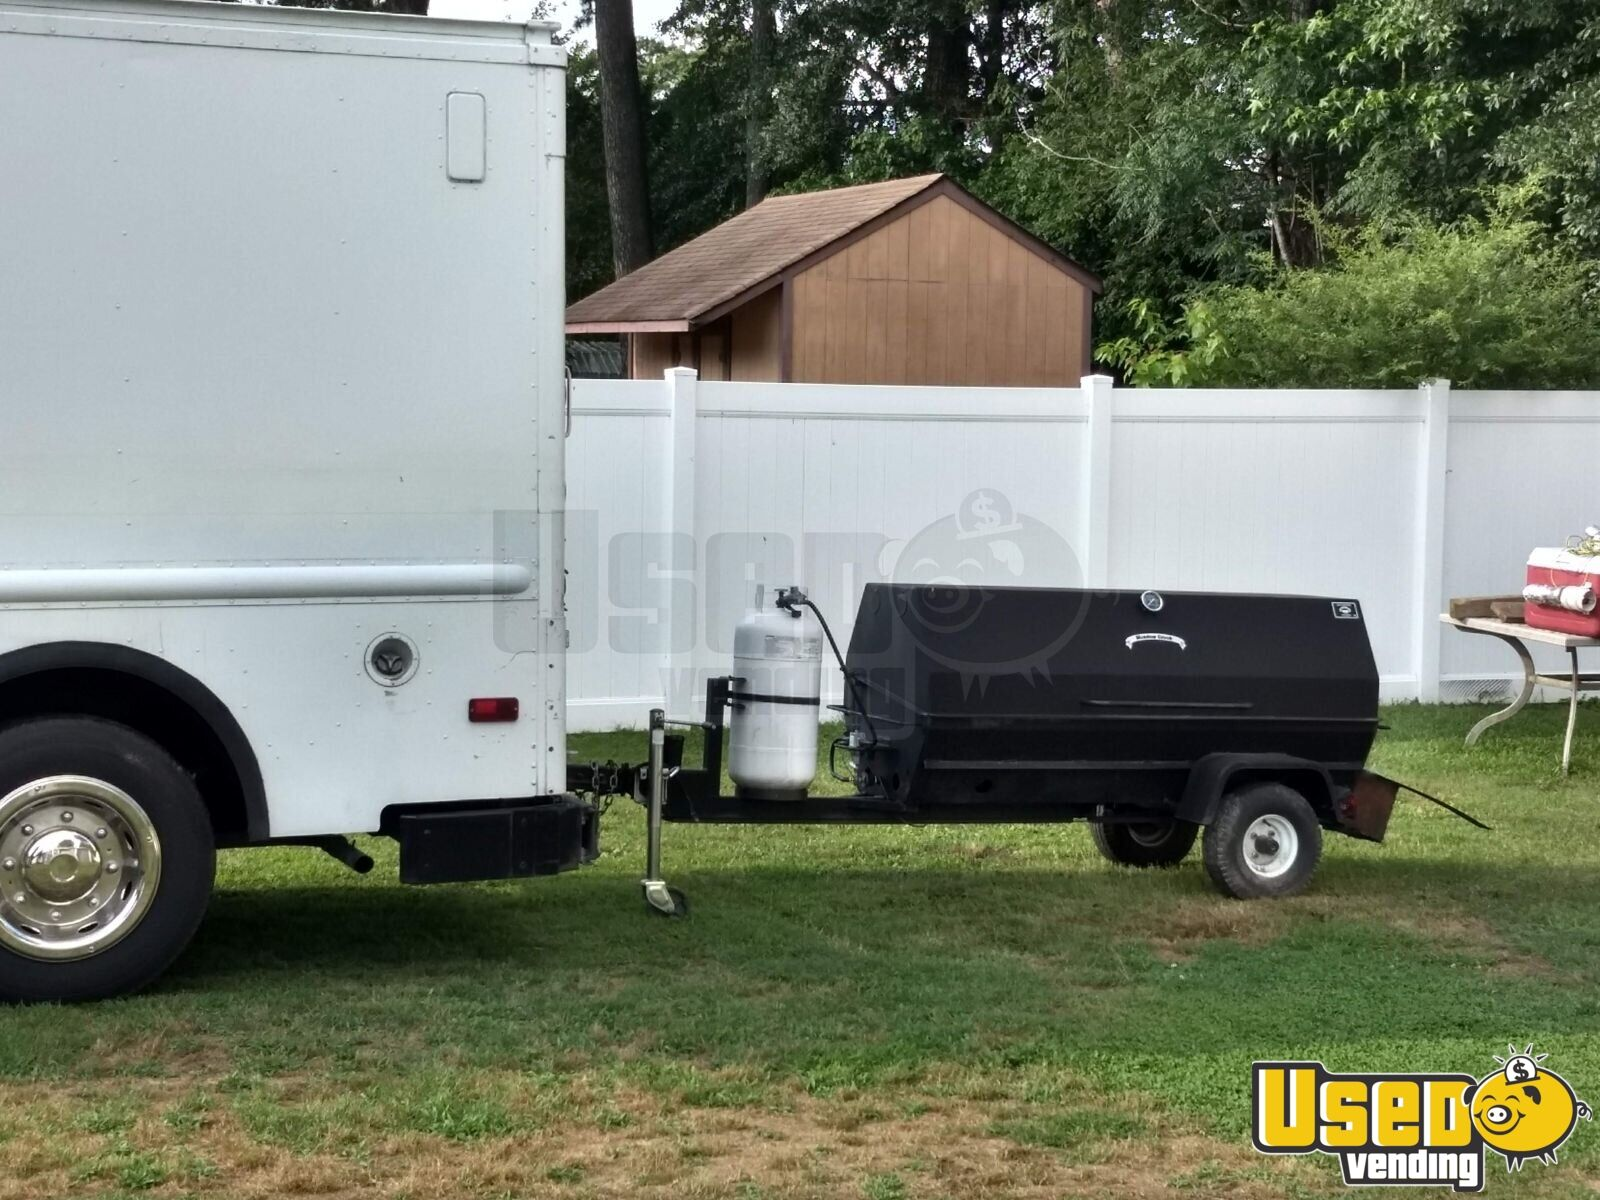 1987 Chev P-30 Food Truck Removable Trailer Hitch Virginia Diesel Engine for Sale - 3